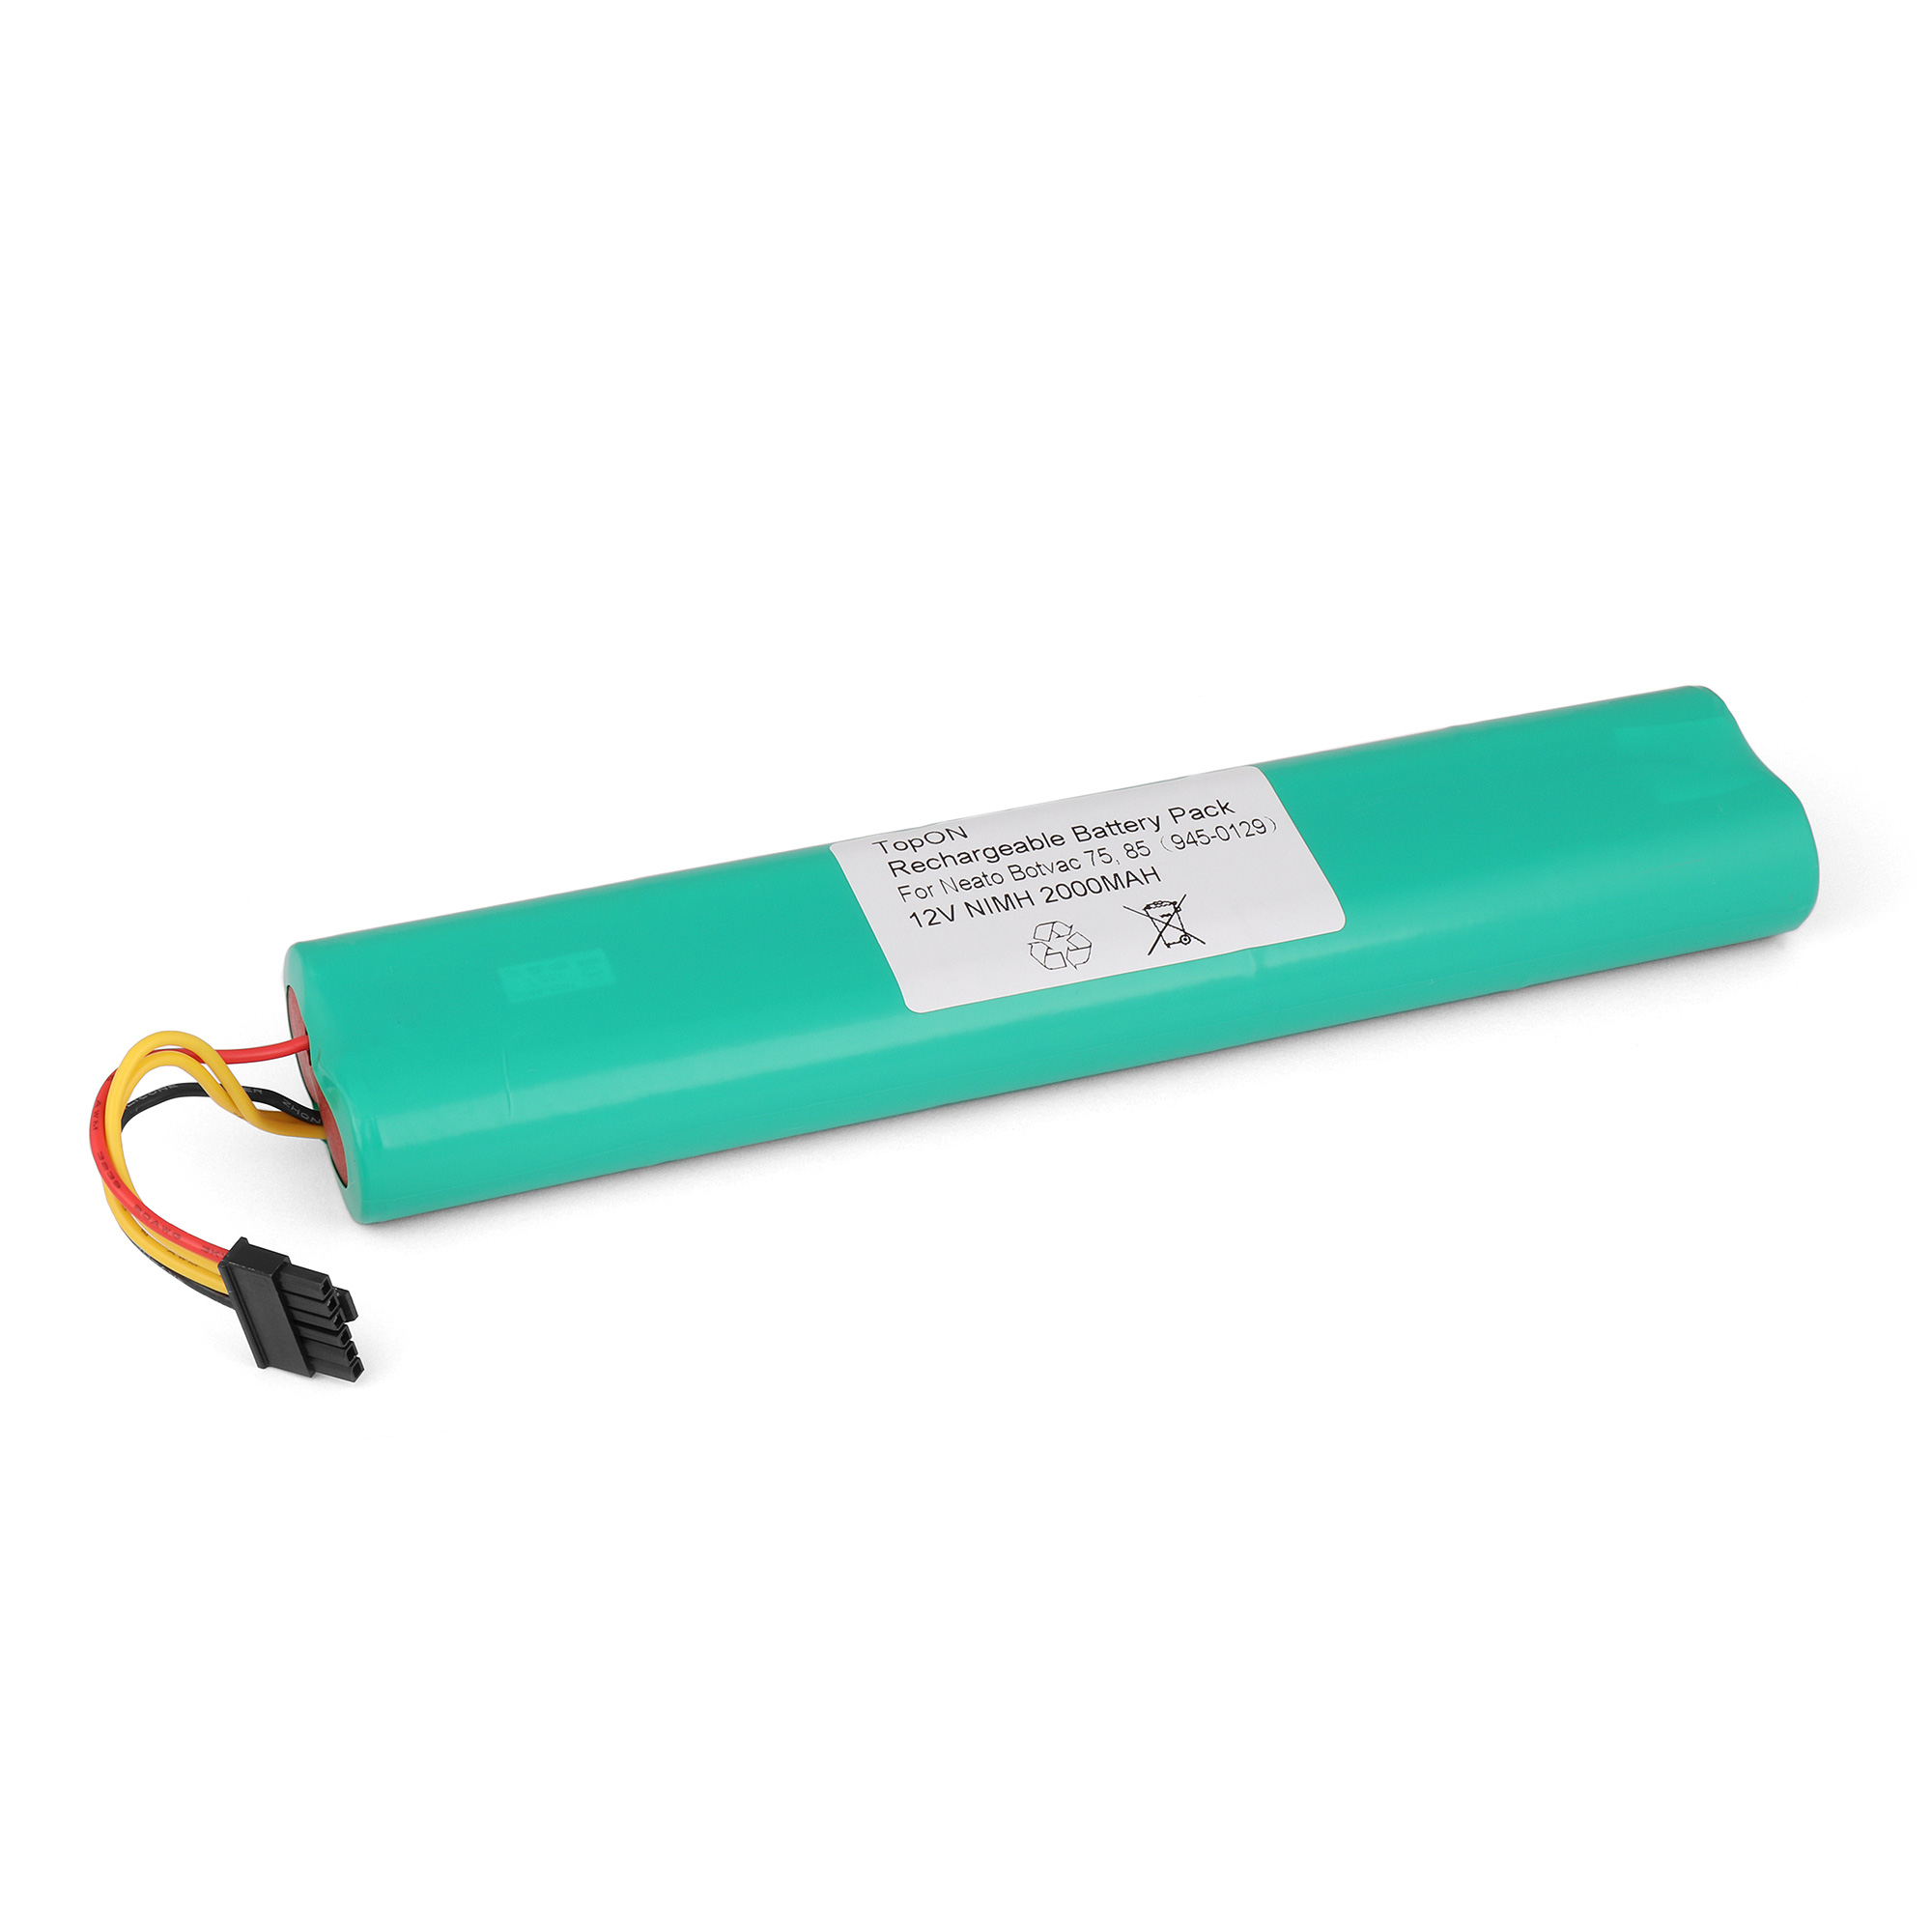 Аккумулятор для пылесоса TopON Neato Botvac 70e, 75, 80, 85. 12V 2000mAh Ni-MH. PN: 945-0129. потребительские товары oem neato 4 x 4 x neato botvac 70 75 80 85 silicone blades and brushes for neato botvac